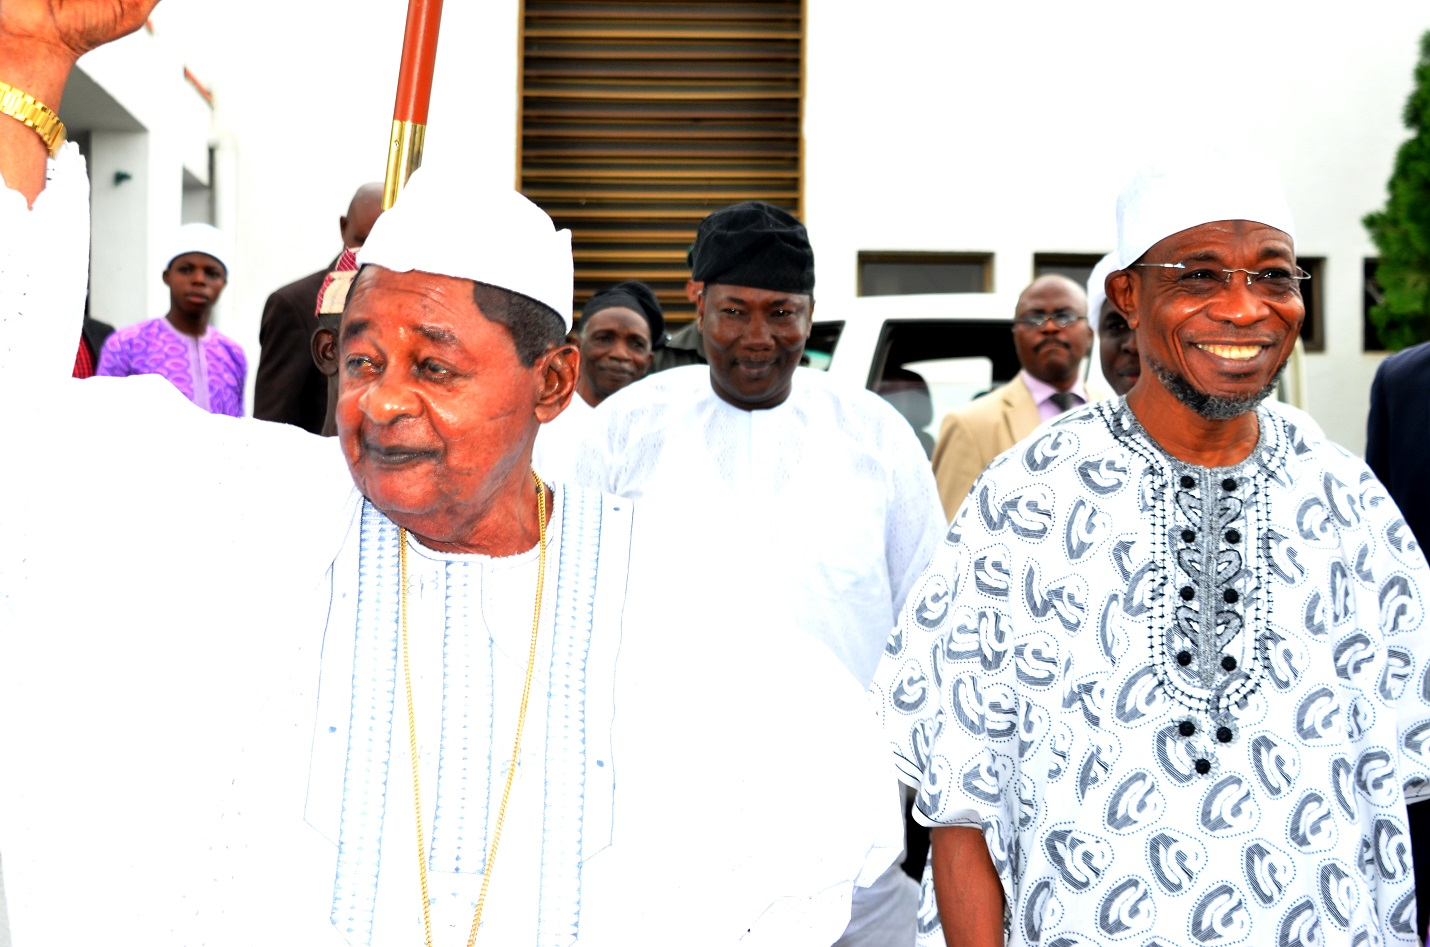 From right-Governor, State of Osun, Ogbeni Rauf Aregbesola;  Speaker of the State House of Assembly, Hon. Najeem Salam and the Alaafin of Oyo, Oba Lamidi Adeyemi, during a condolence visit to Aregbesola on the demise of the Ooni of Ife, Oba Okunade Sijuwade, at Government House Osogbo, on Monday 07/09/2015.